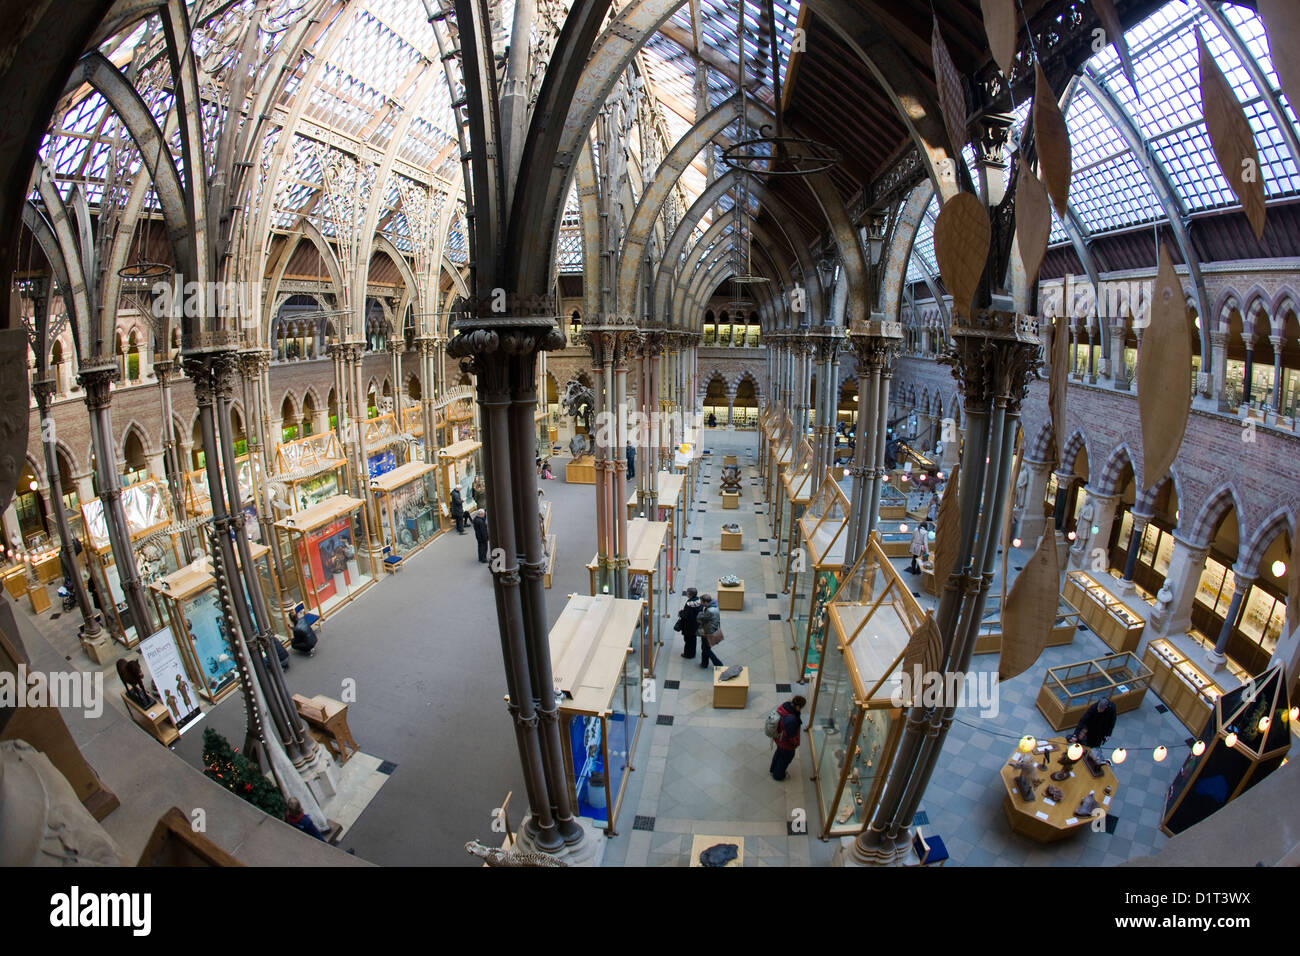 The Natural History Museum in Oxford, UK - Stock Image